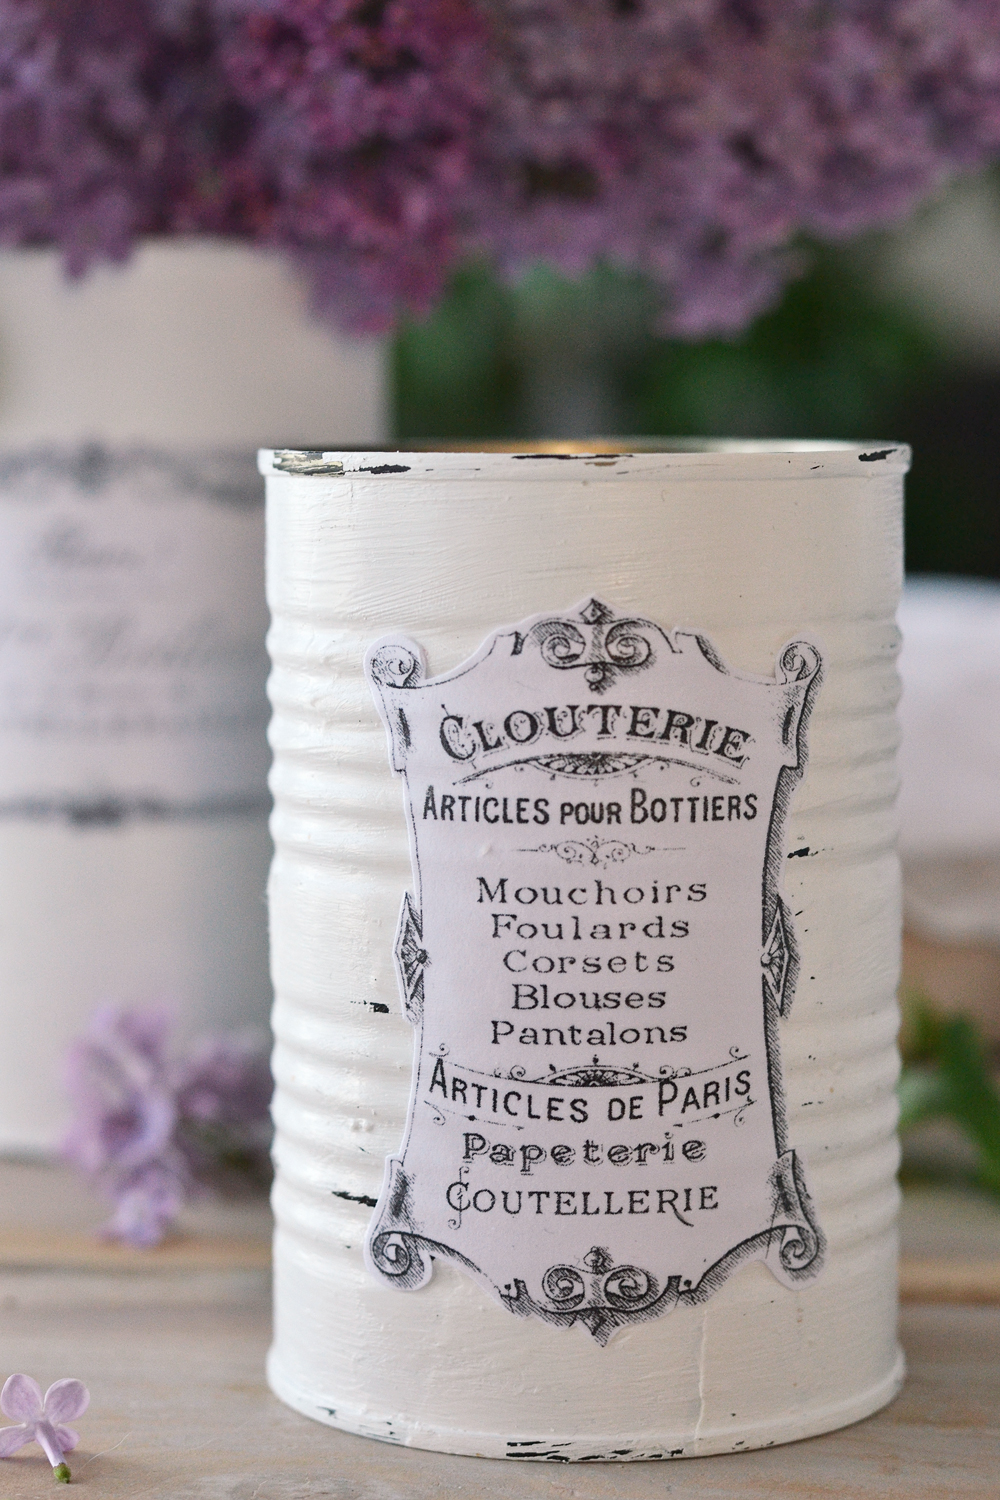 DIY French Recycled Tin Cans - free printable www.bydreamsfactory.com #diy #vintage #french #recycled #freeprintable